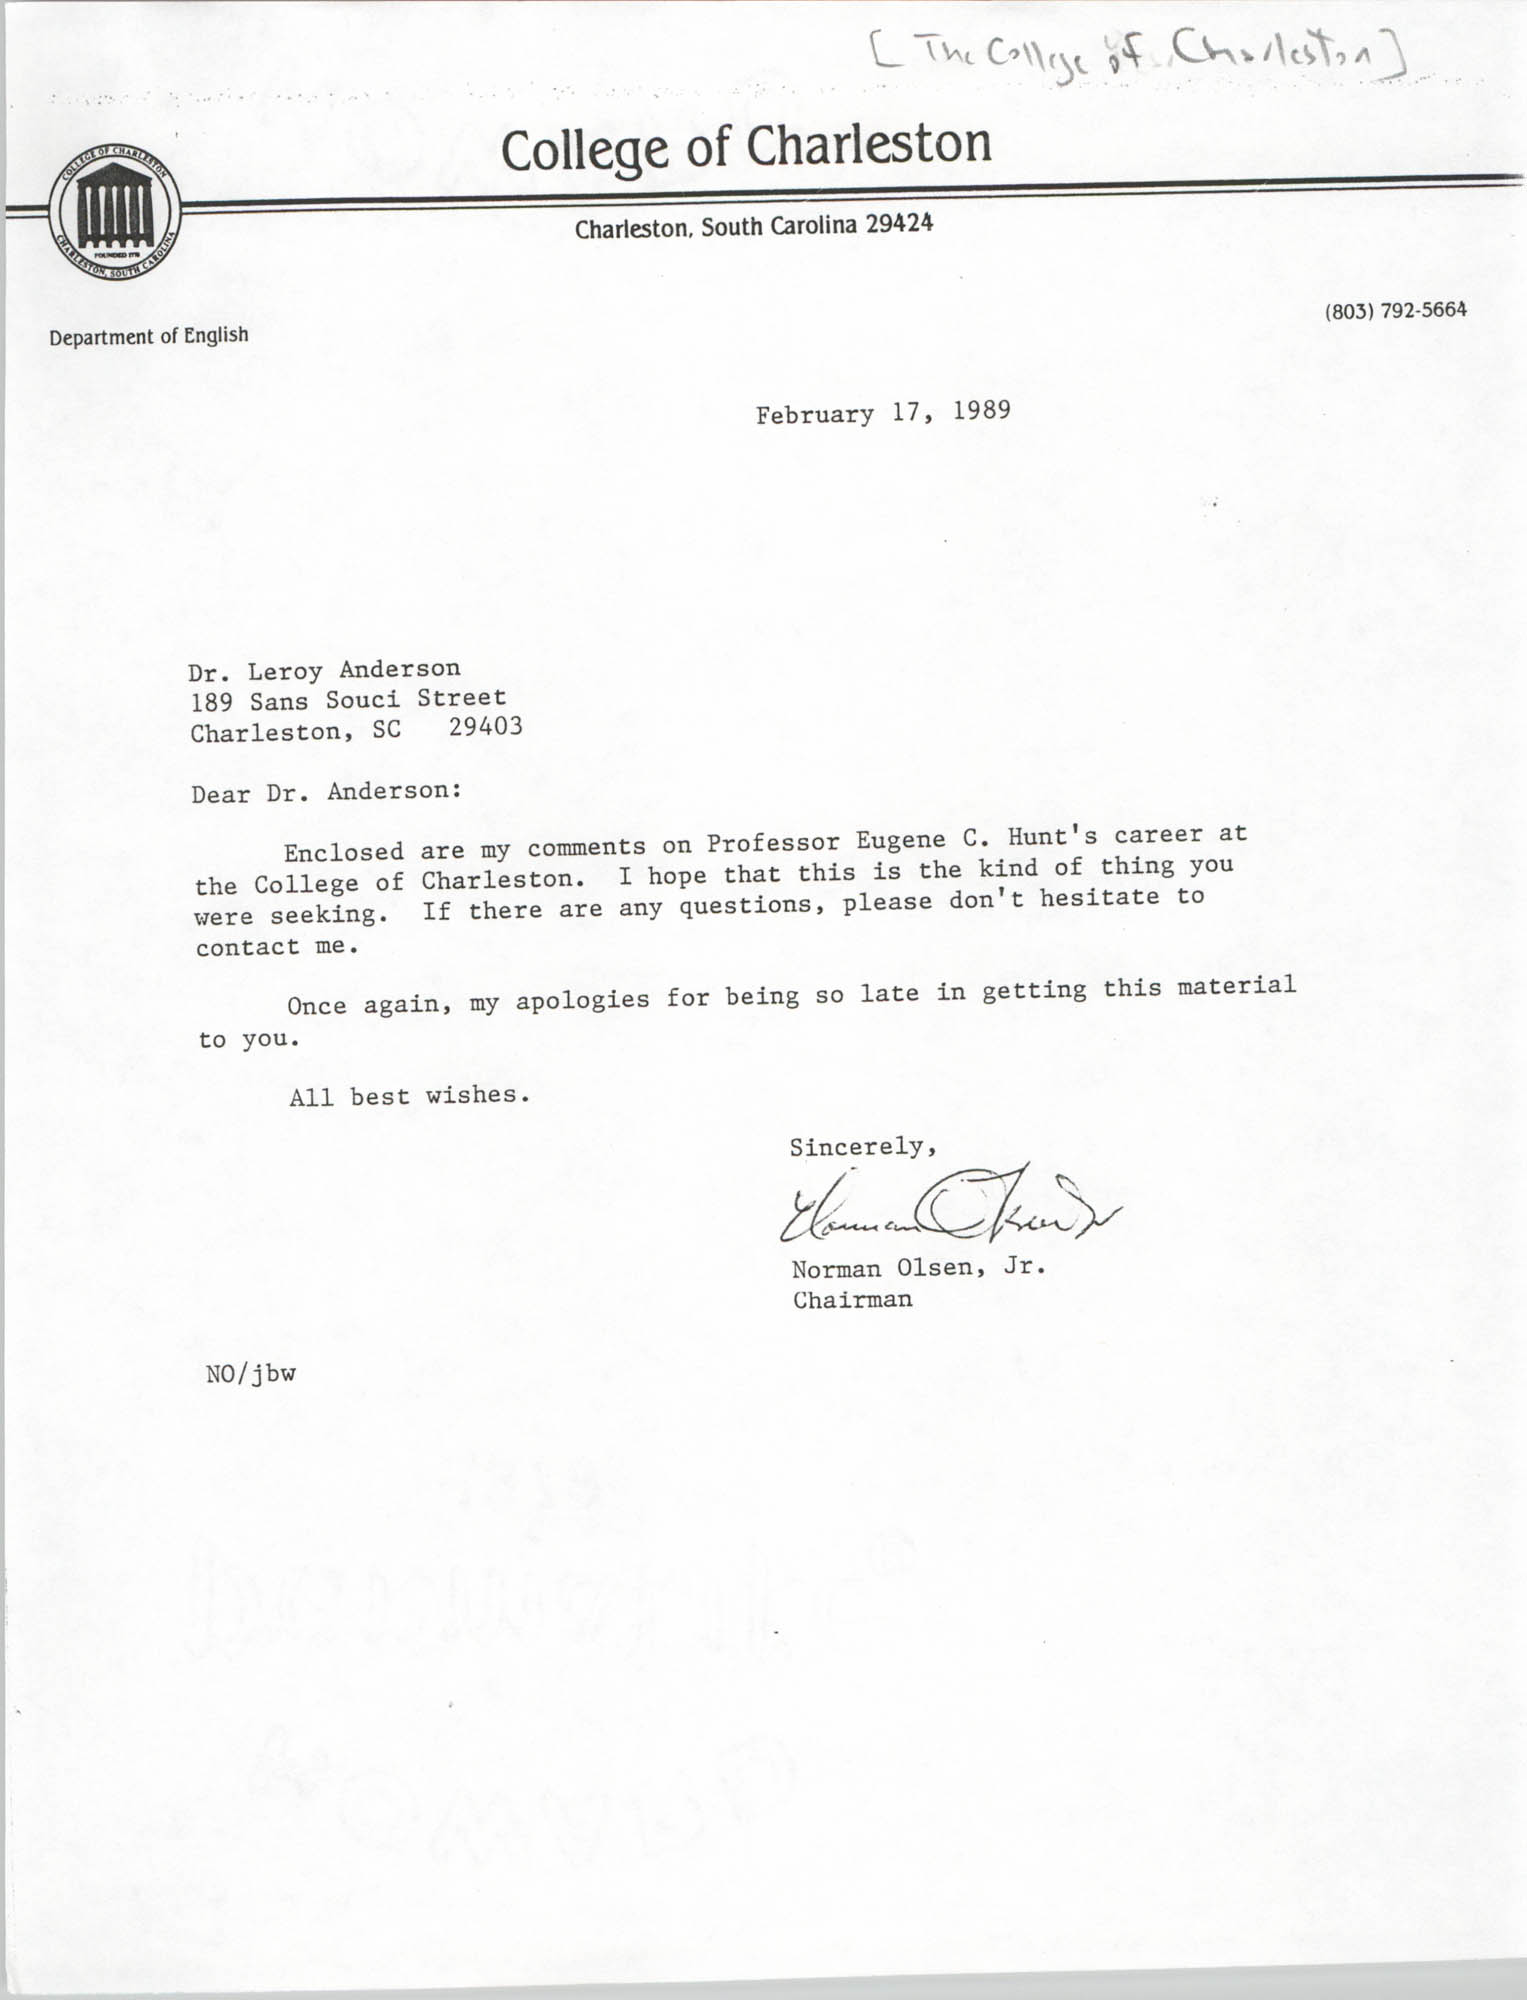 Letter from Norman Olsen, Jr. to Leroy Anderson, February 17, 1989